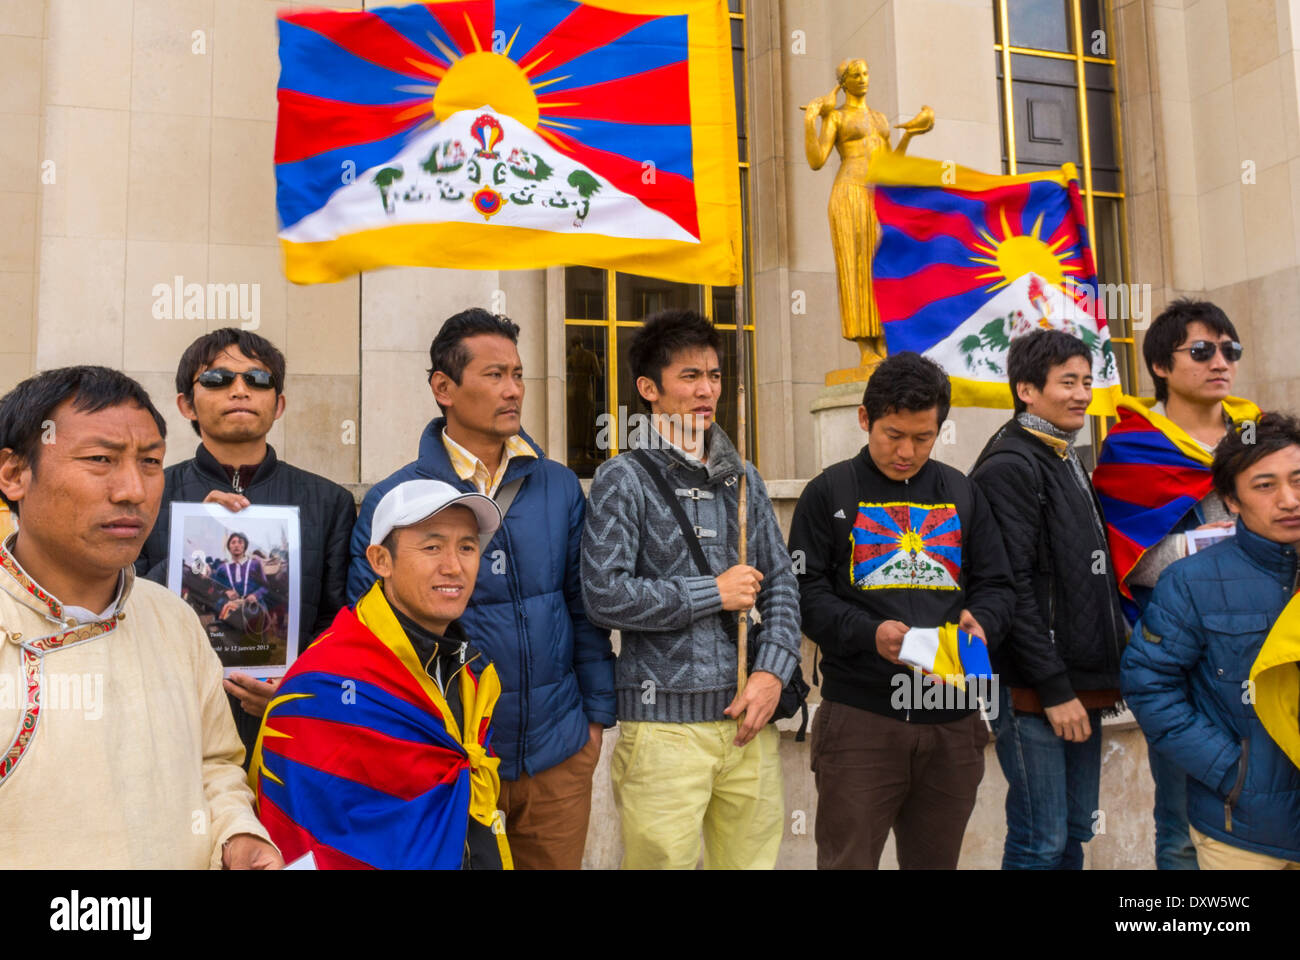 The Tibetan, Taiwanese, Ethnic Communities of France, Demonstration called for French citizens to mobilize during the visit of Chinese President in Paris, Holding Protest Signs and Flags, Citizens rights protests, solidarity youth movement Stock Photo